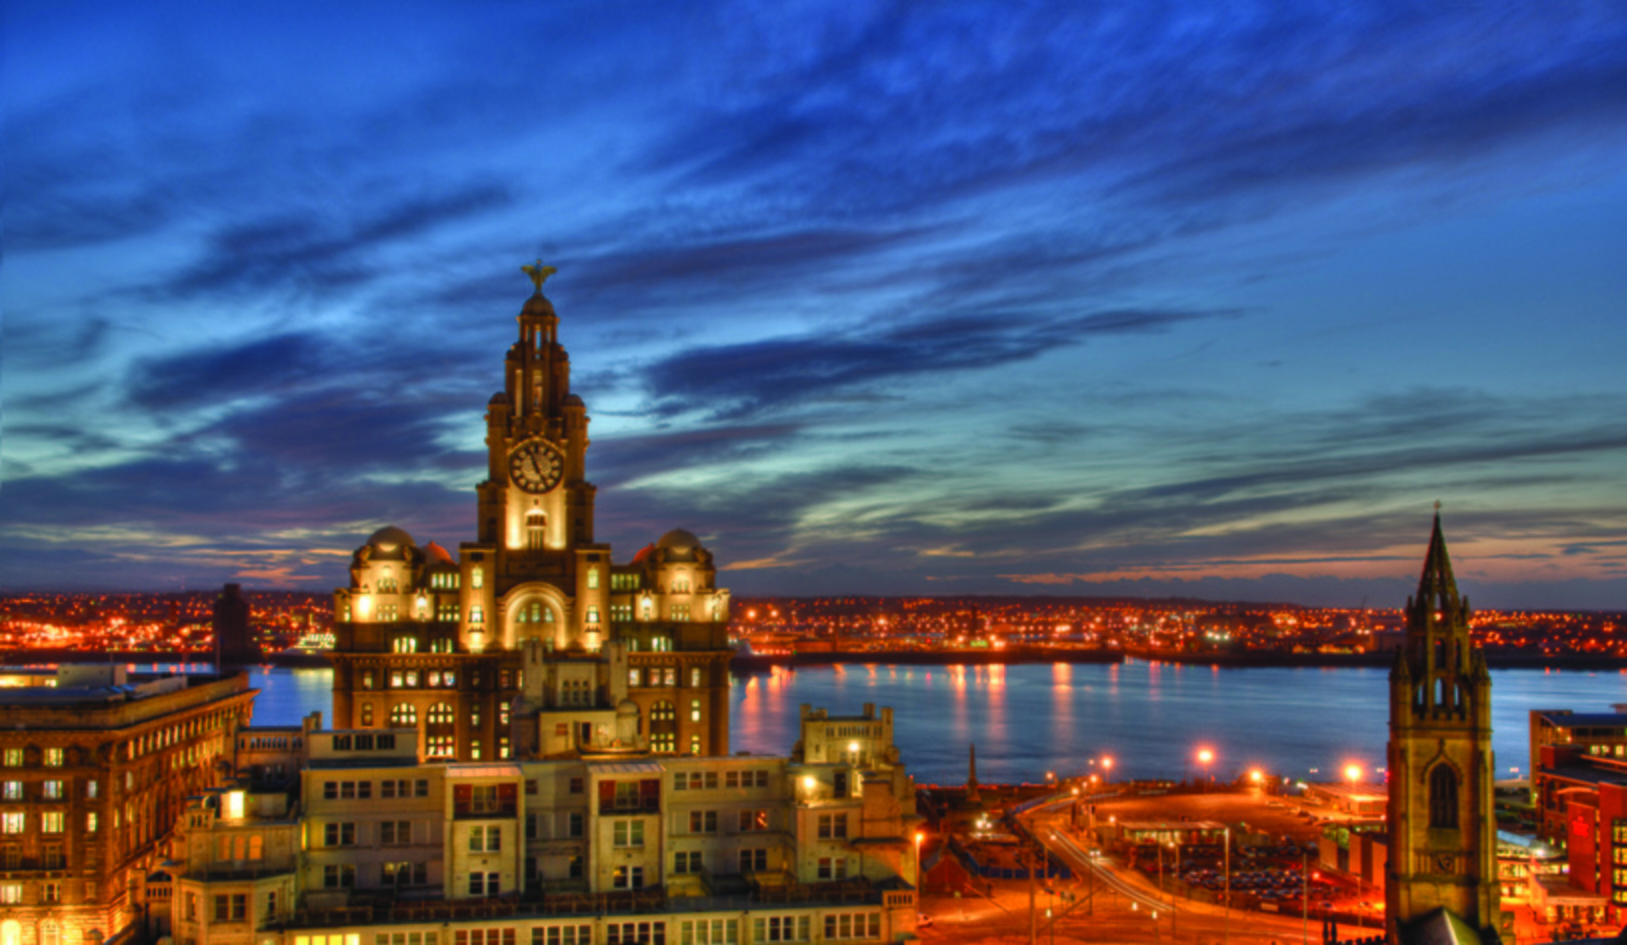 Liver-Building-sunset.jpg